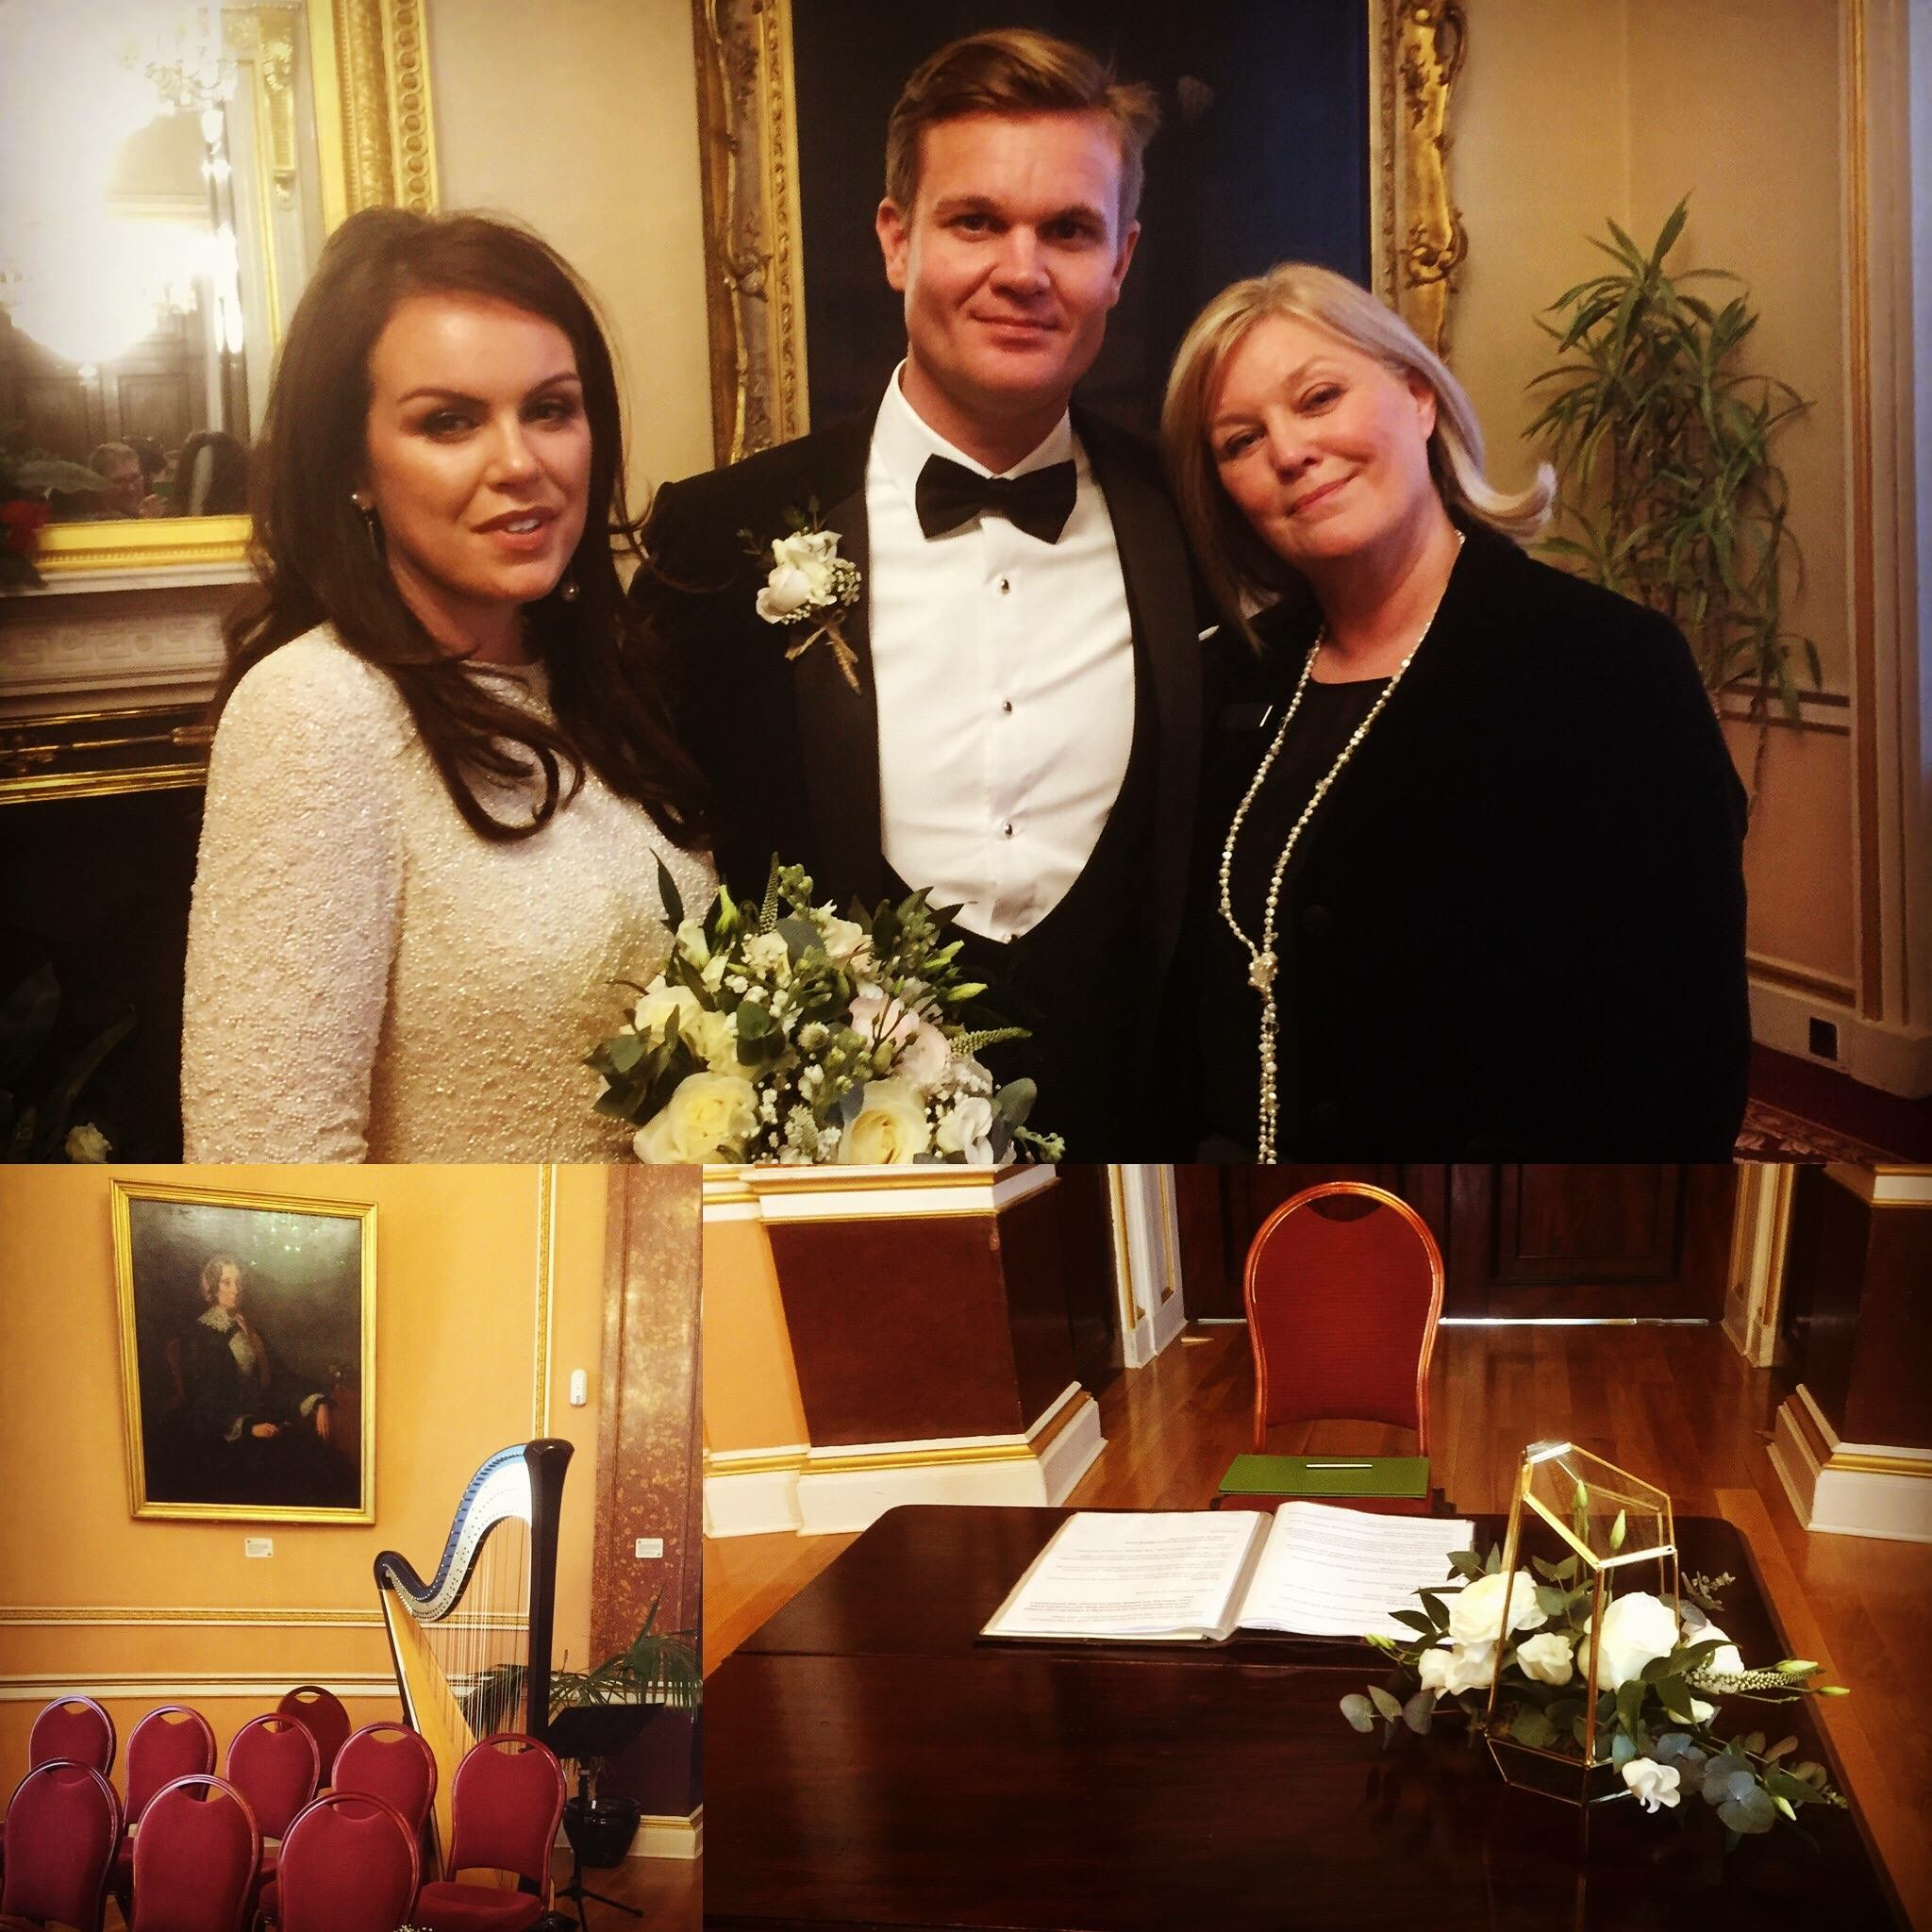 Elegant Liverpool Town Hall Wedding Celebrant, Lorraine Hull